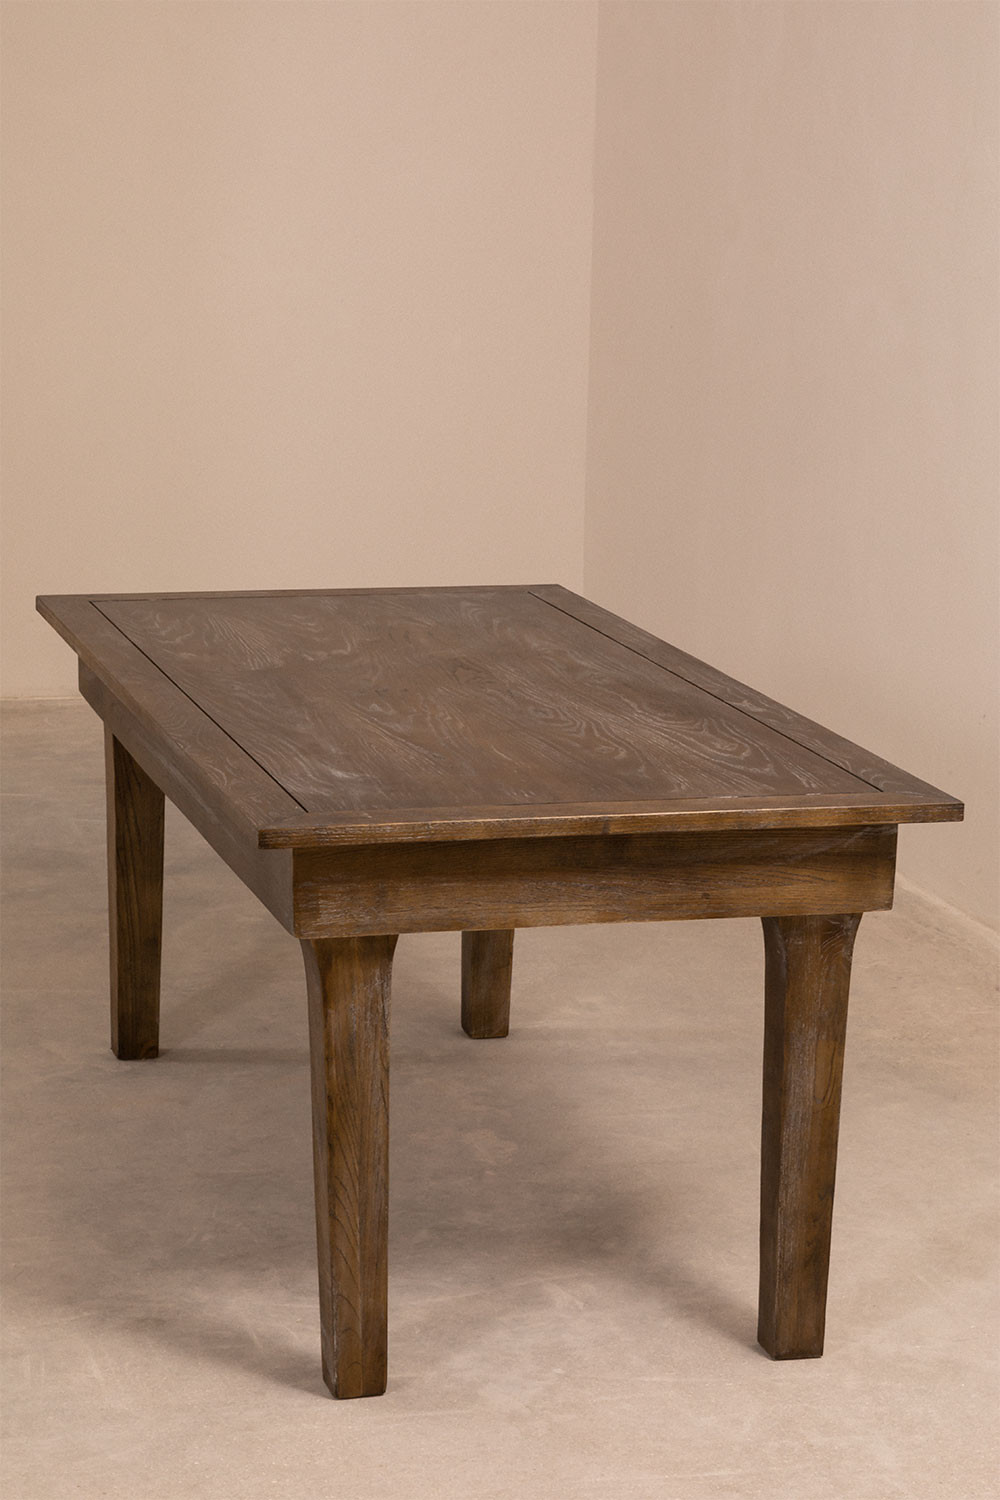 Isden Folding Wooden Dining Table (180x90 cm), gallery image 1